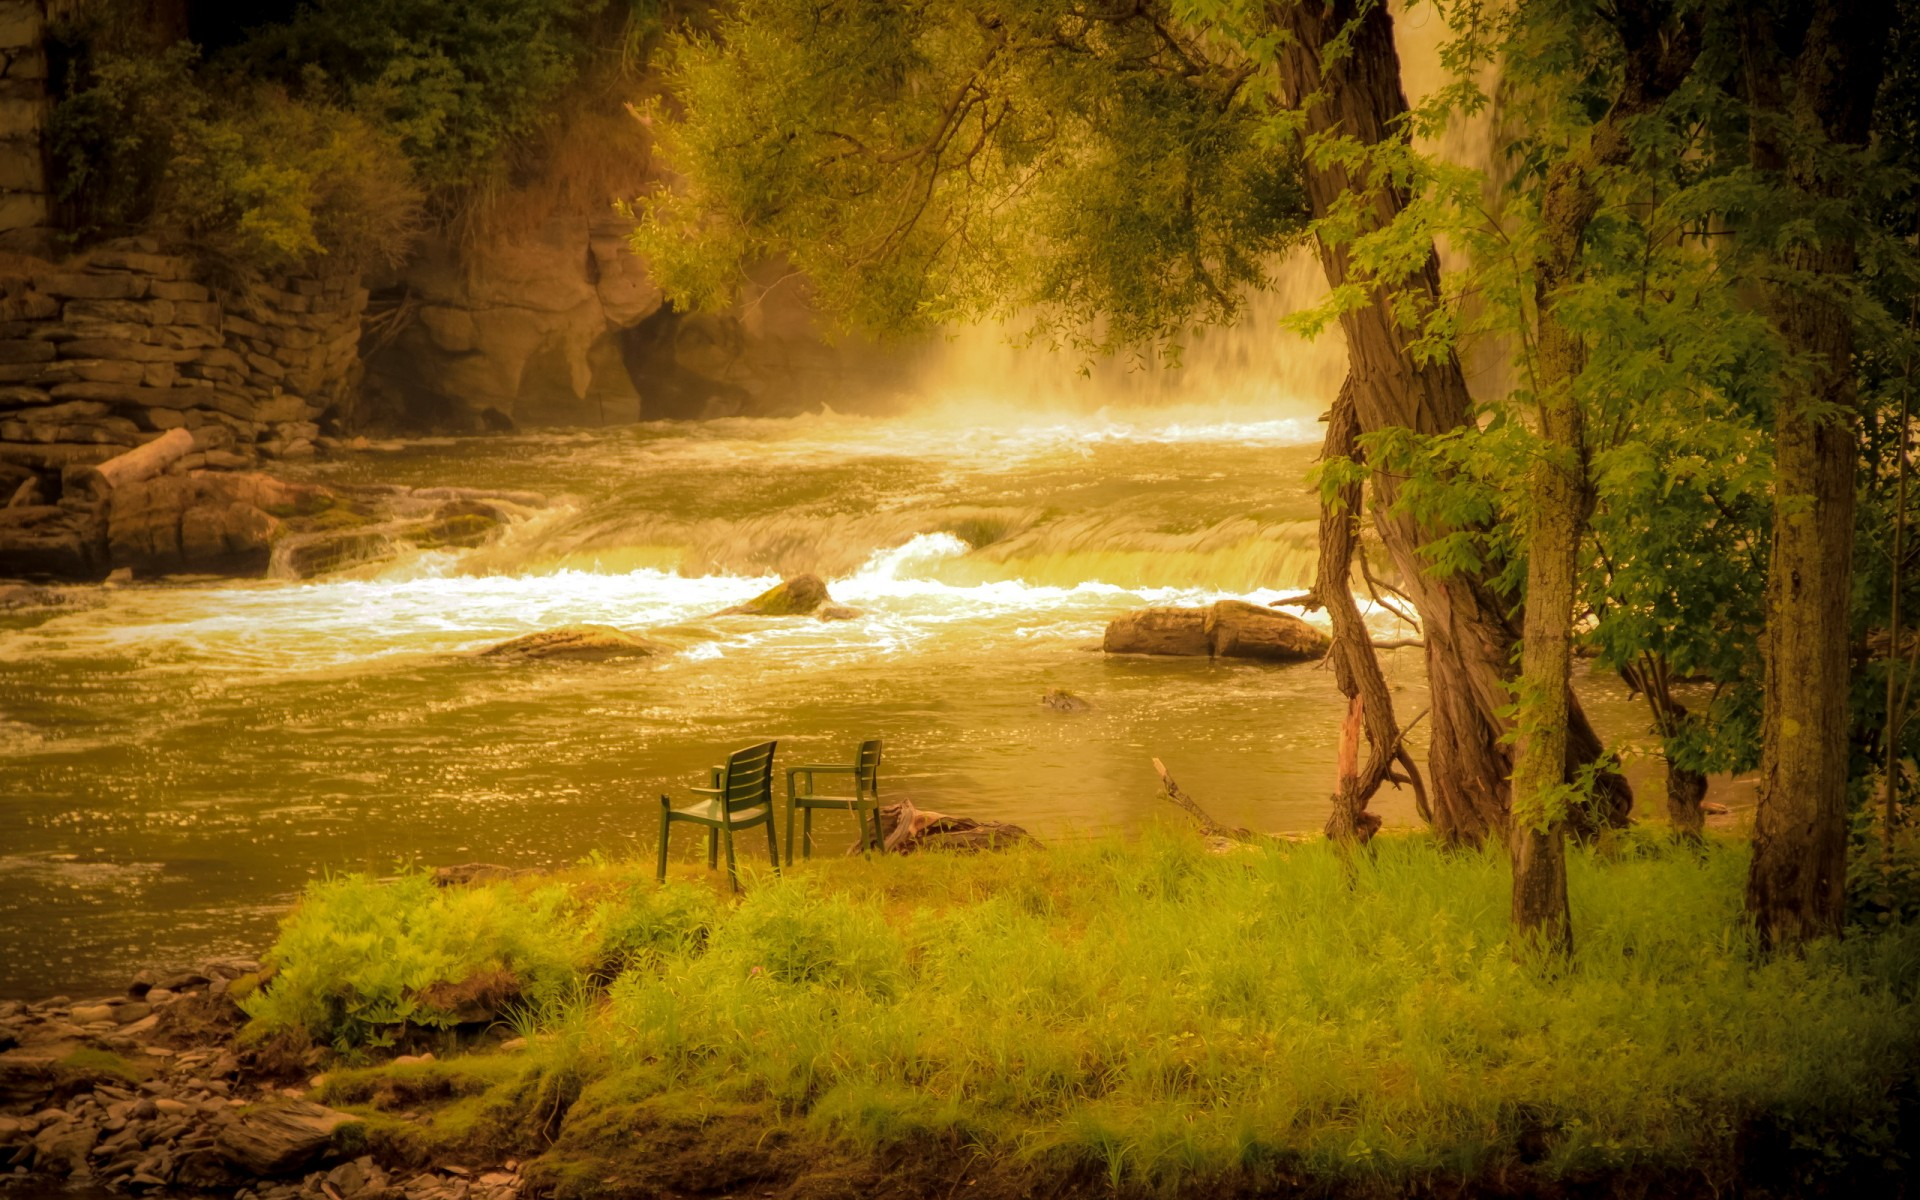 Mood Bench Rustic Chair Nature Landscapes Rivers Waterfall Rapids Trees Forest Shore Fishing Fog Wallpaper